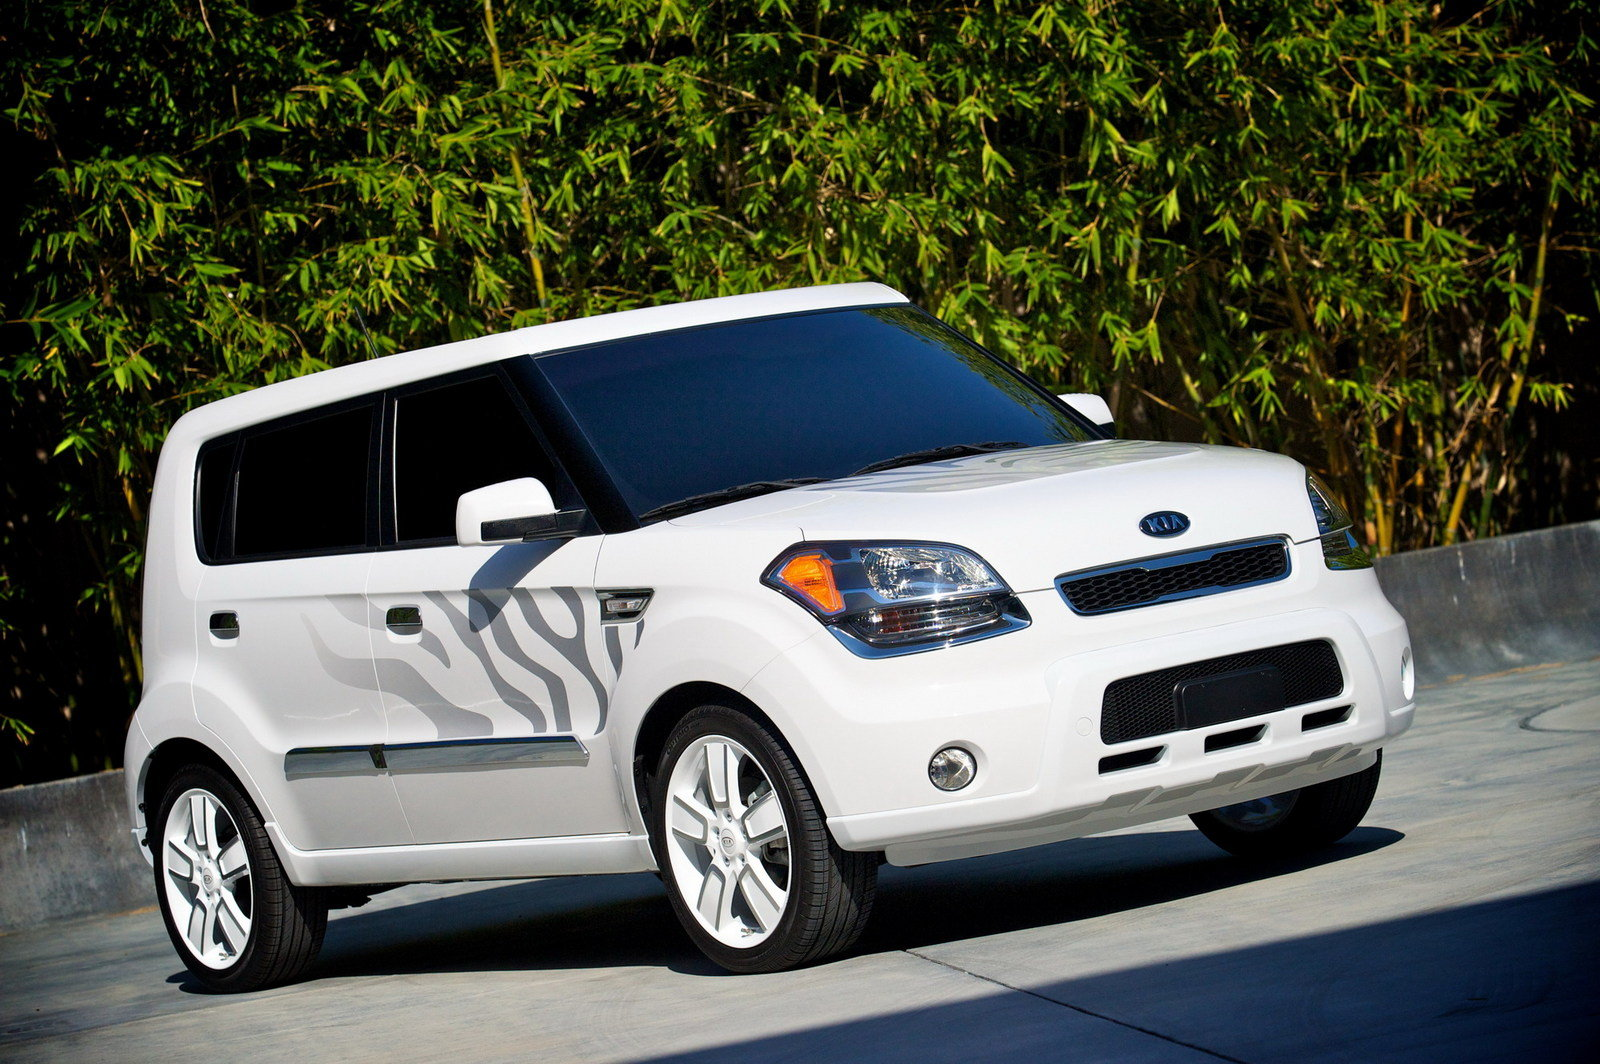 2010 kia soul white tiger concept review top speed. Black Bedroom Furniture Sets. Home Design Ideas